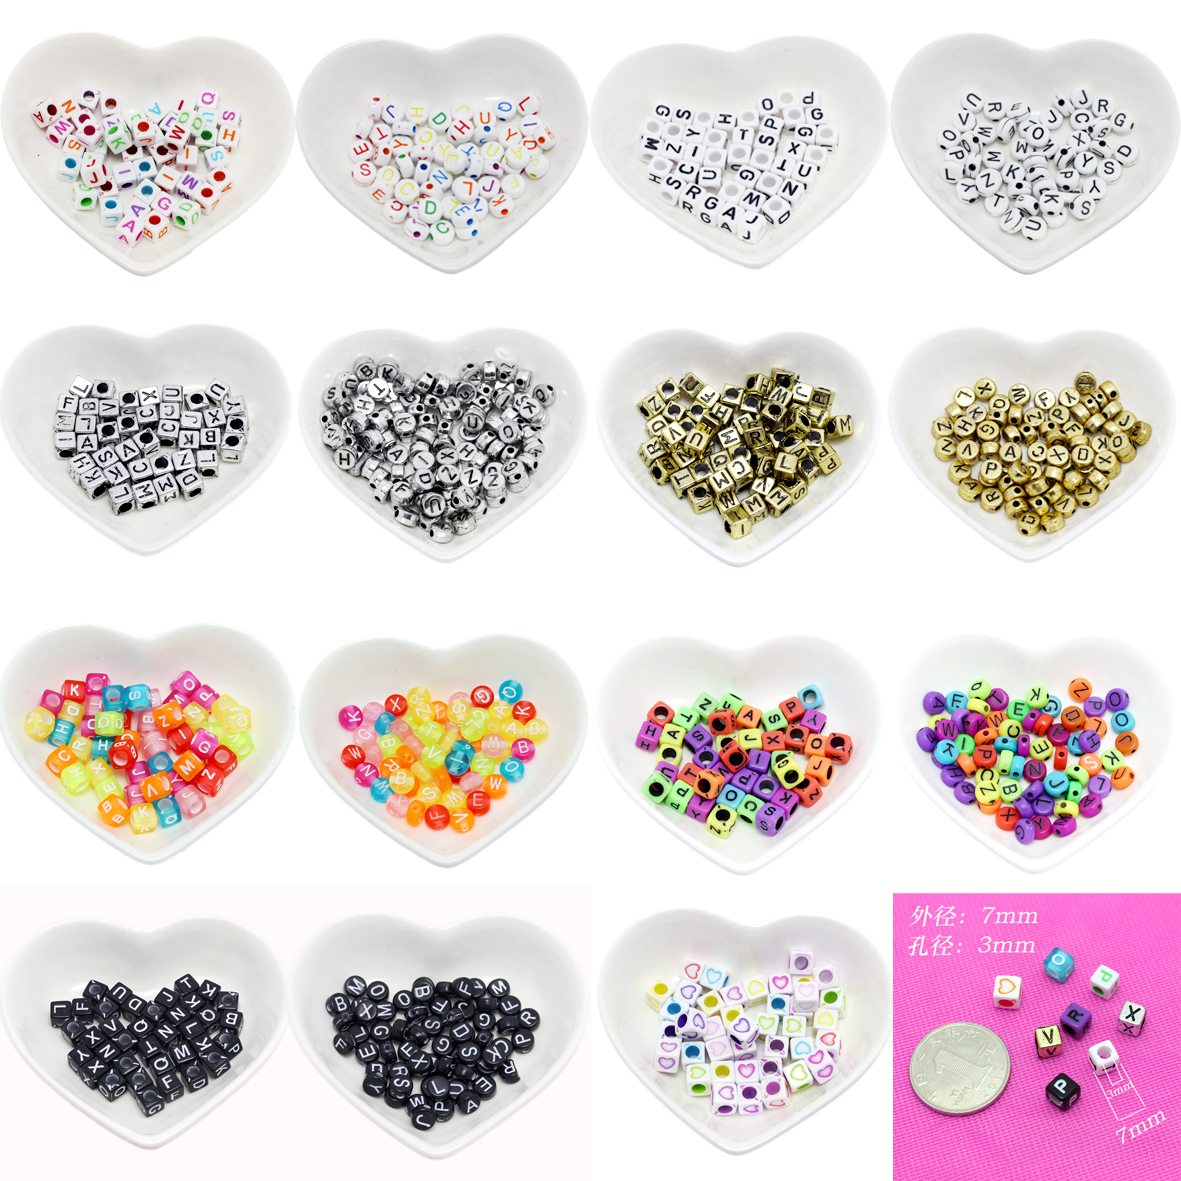 Disciplined Wholesale Hot Sale 100pcs 6mm Mixed Acrylic Square English Alphabet Letter Charms Beads For Jewelry Making Diy Garment Beads Garment Beads